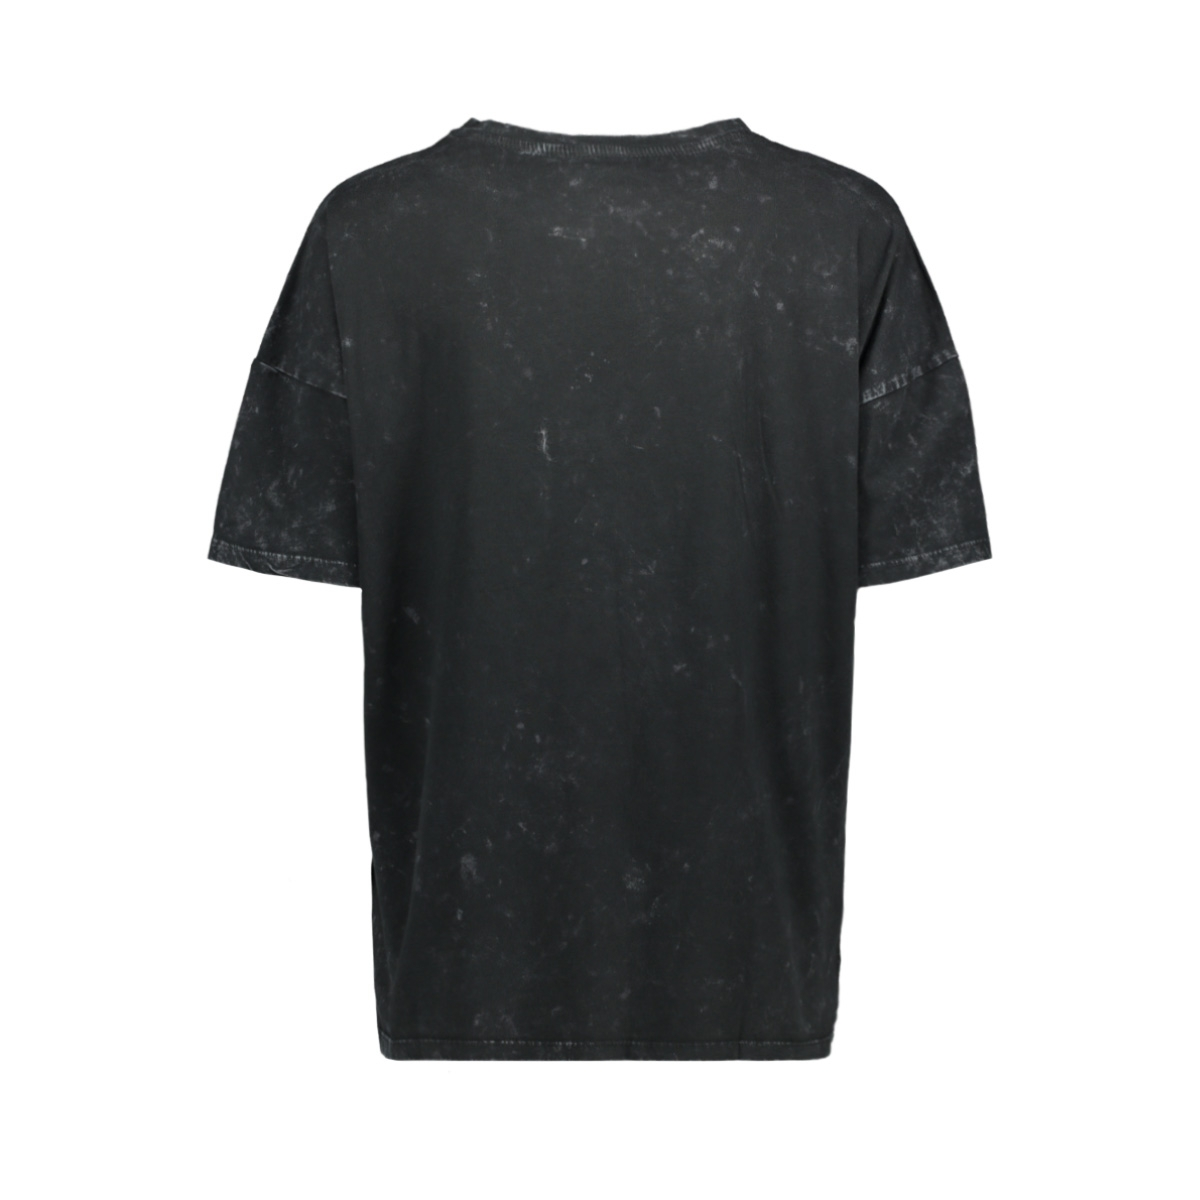 nmida hero s/s top fd 27012171 noisy may t-shirt black/wash and pri